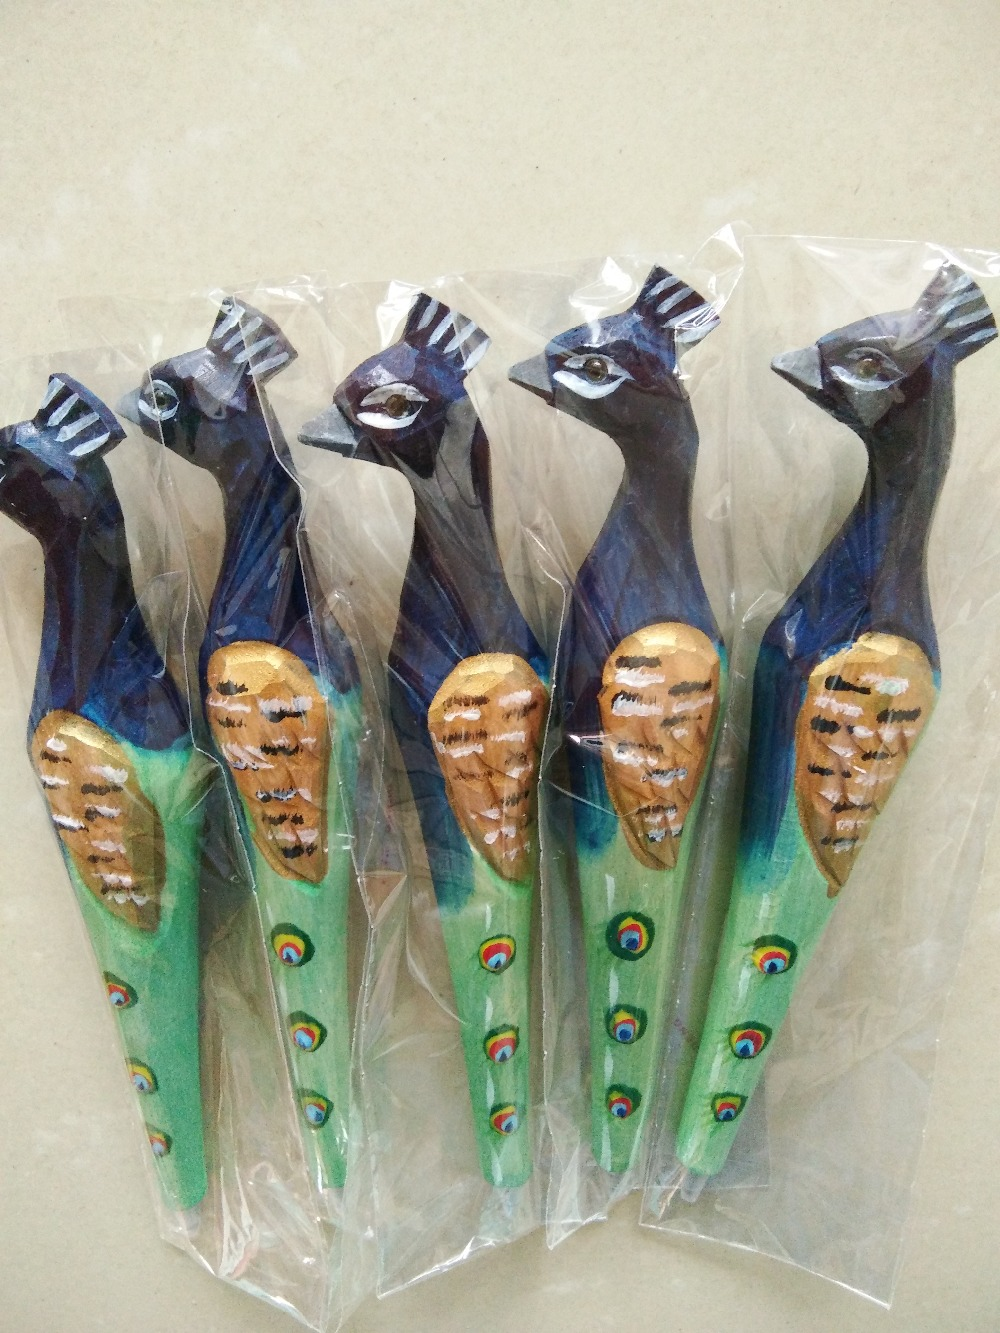 Promotional high quality  wood craft peacock ballpoint pen basswood peafowl tourist gift